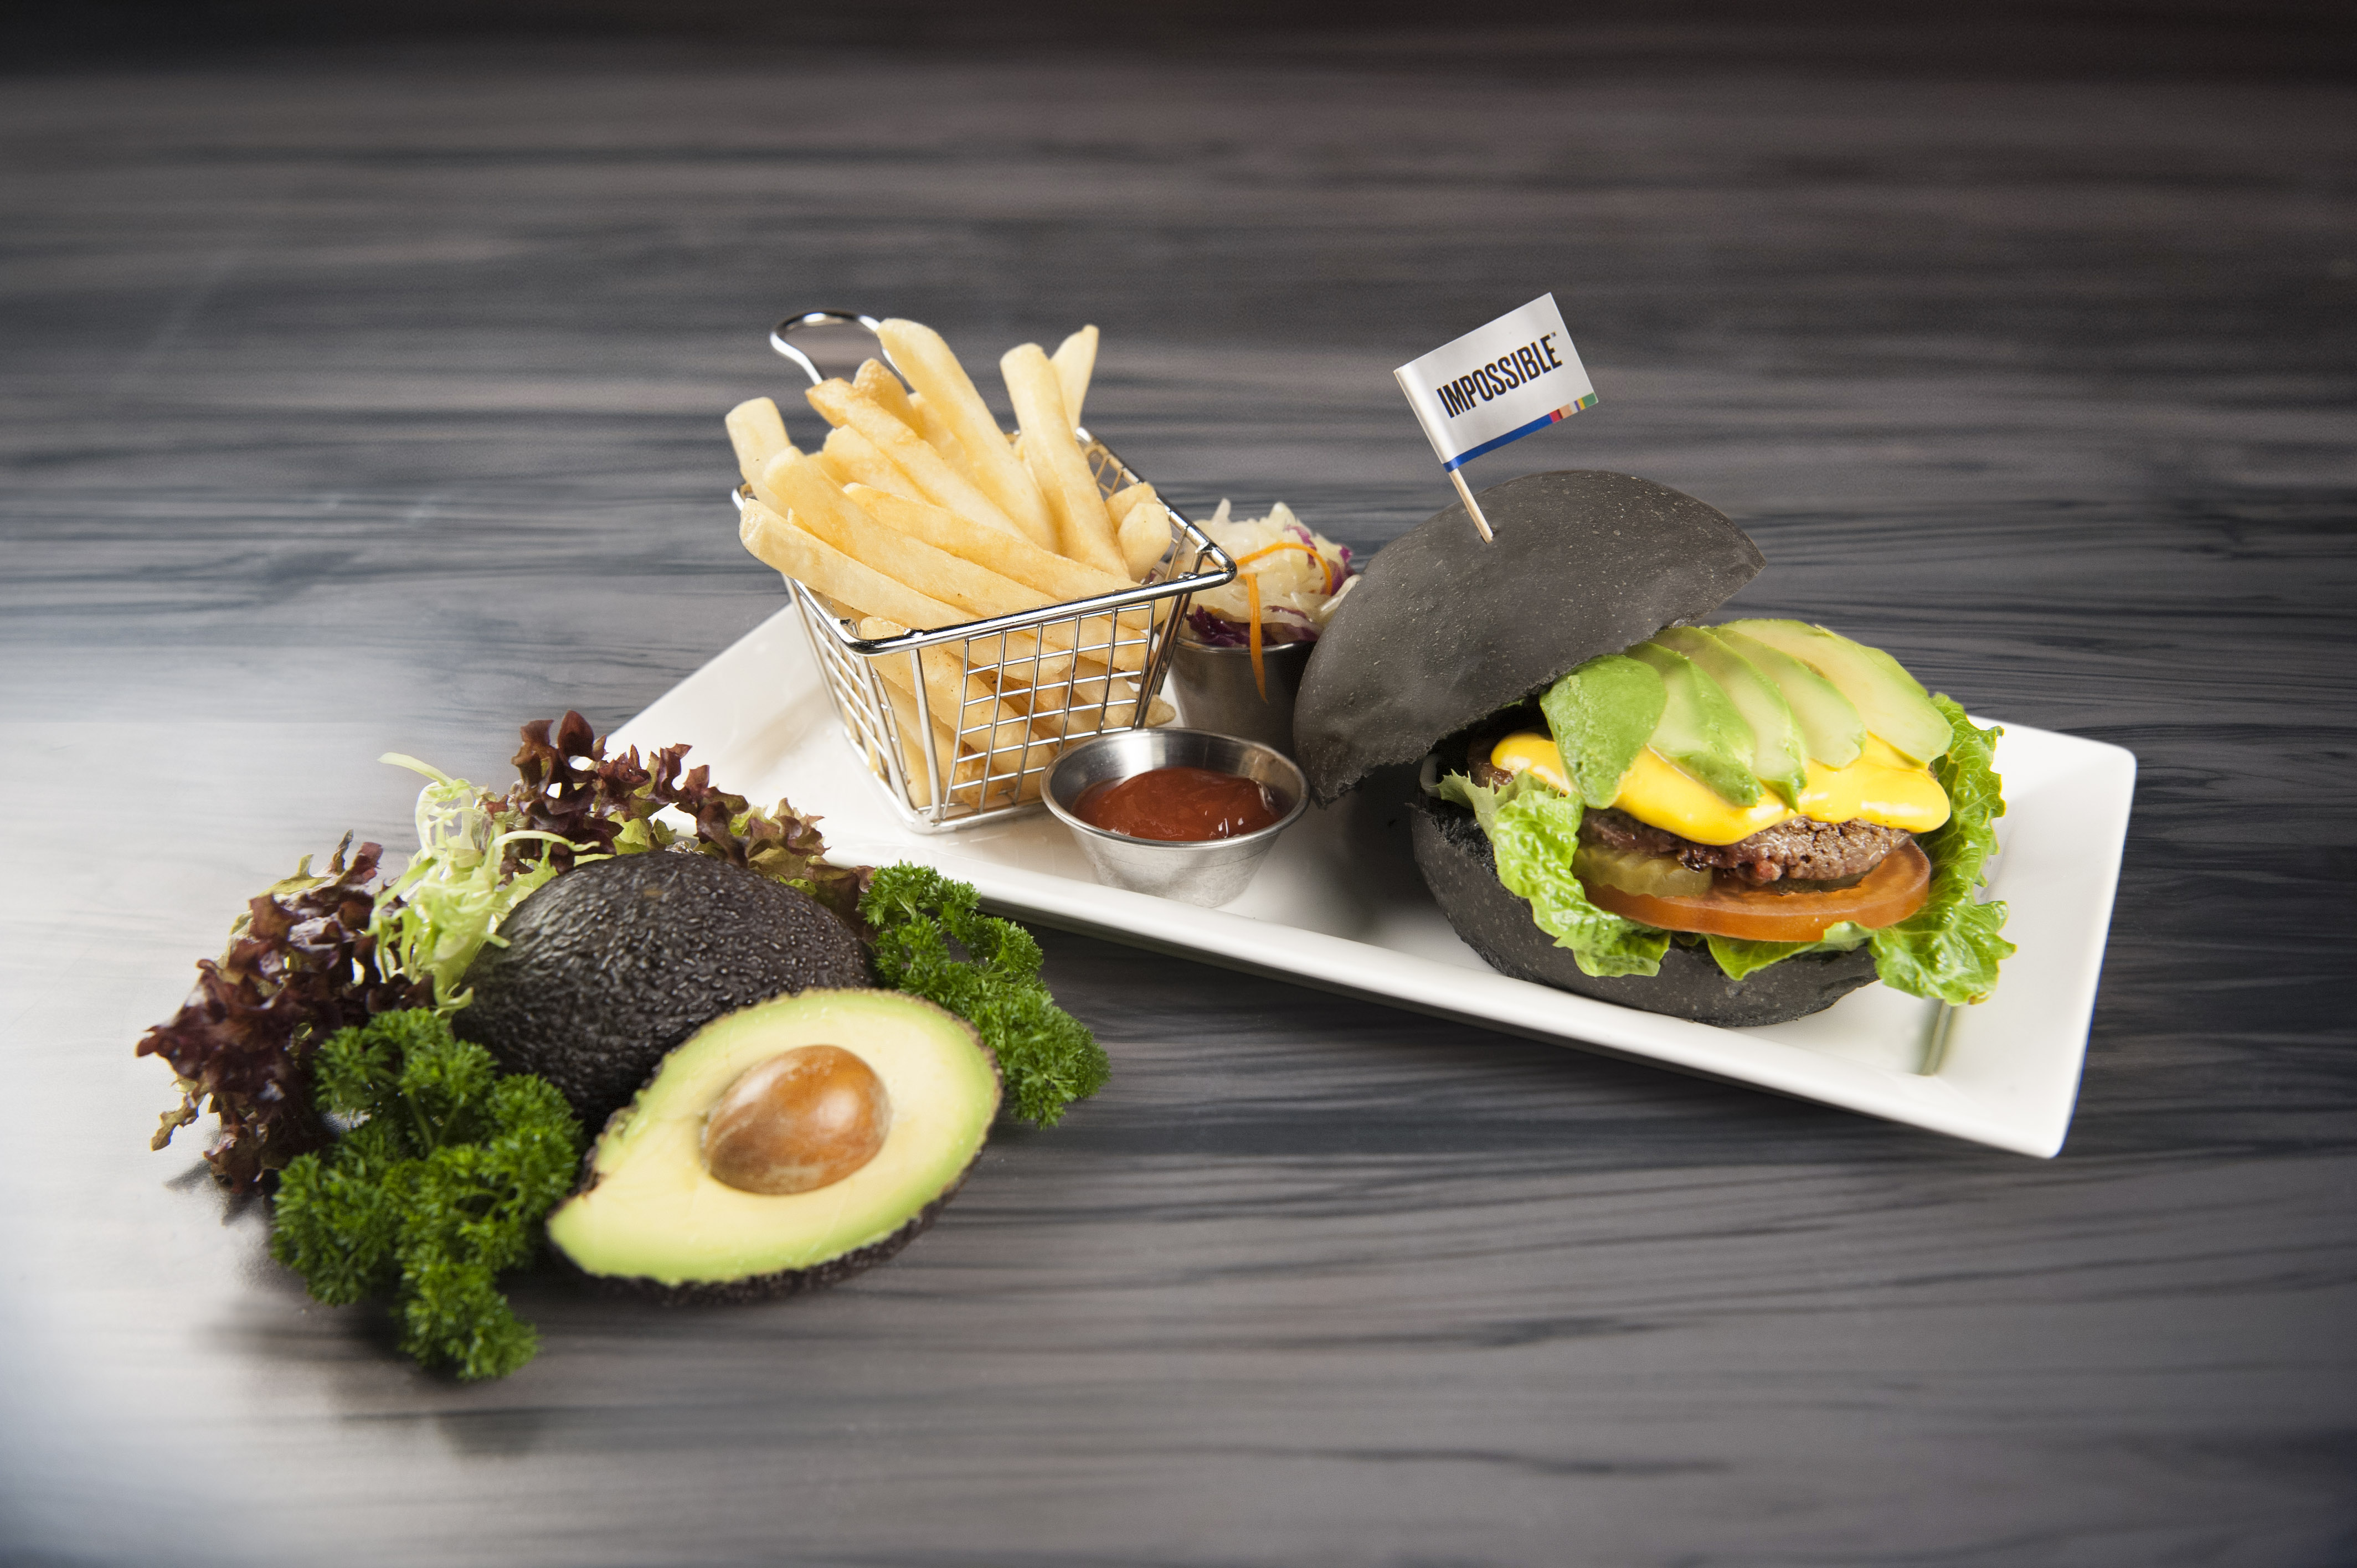 Impossible__Avocado Burger